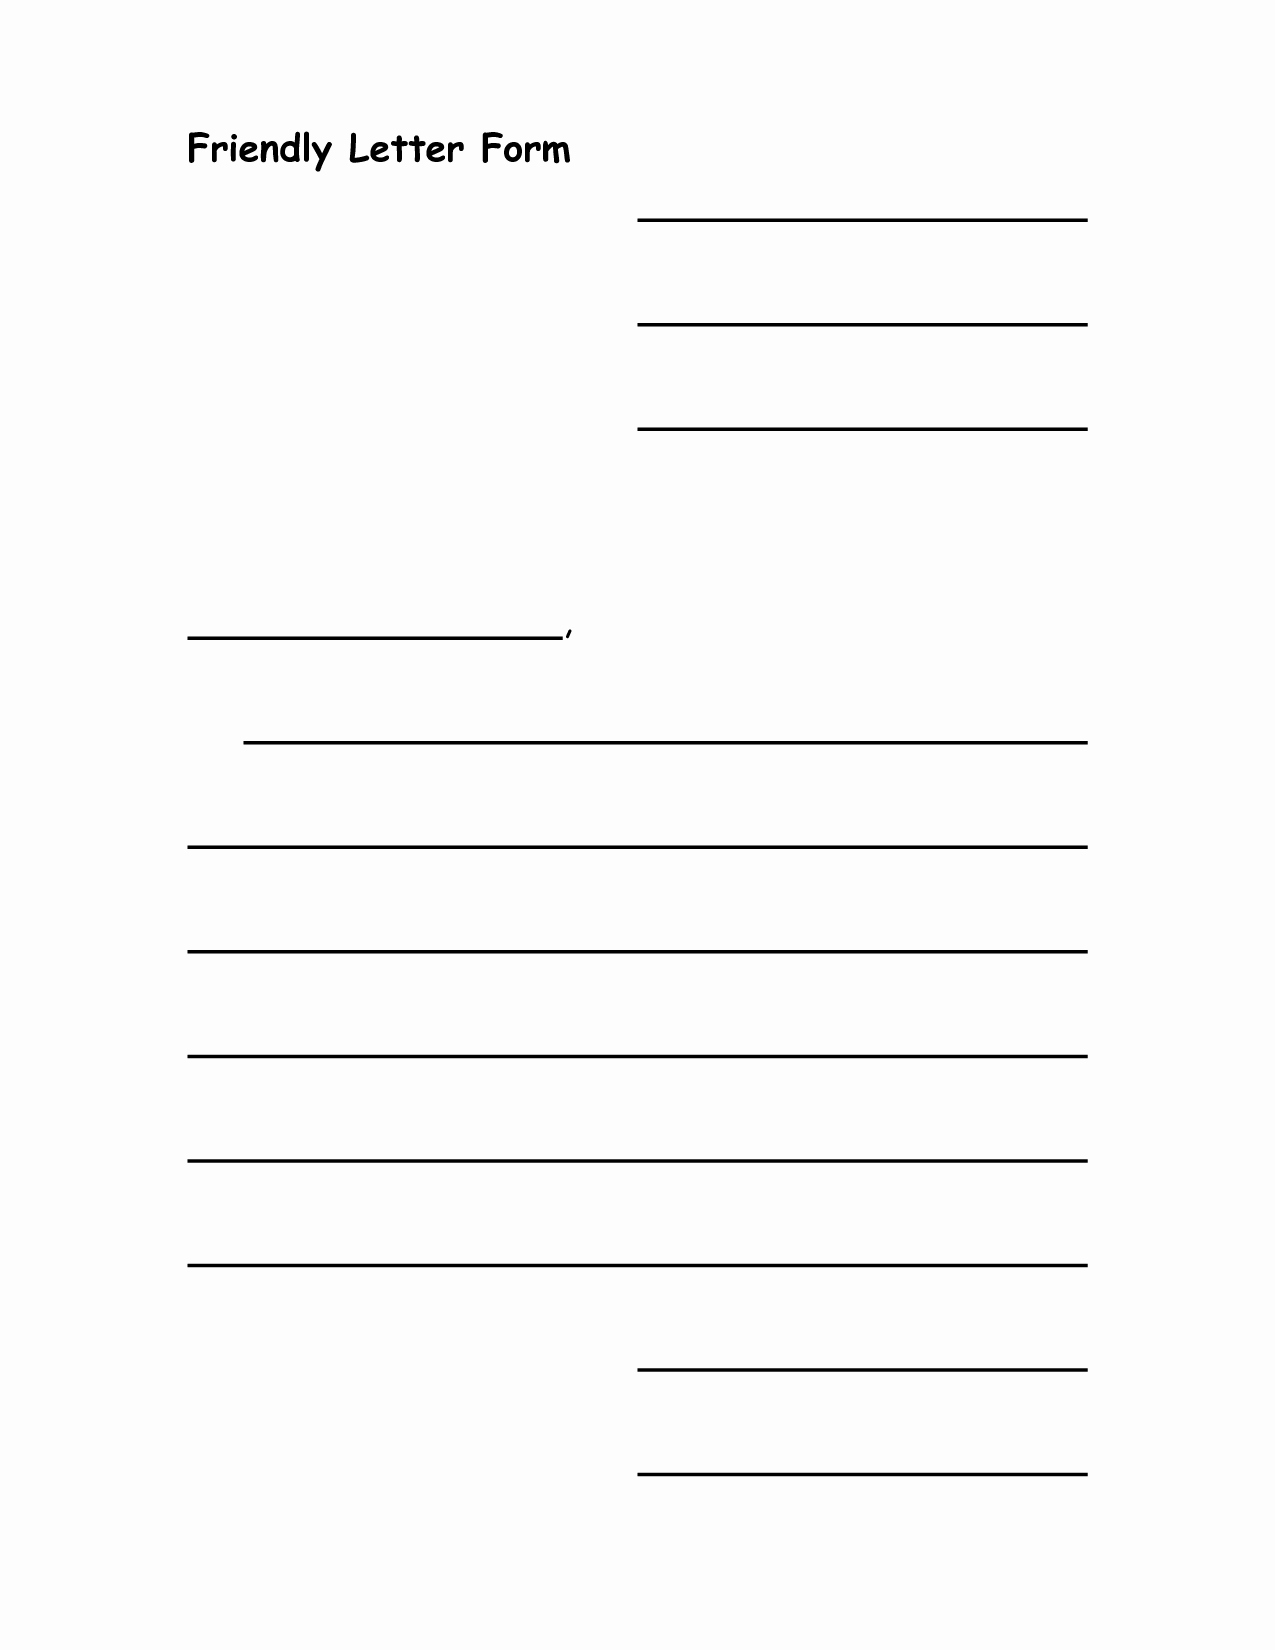 7 Best Of Printable Friendly Letter Writing